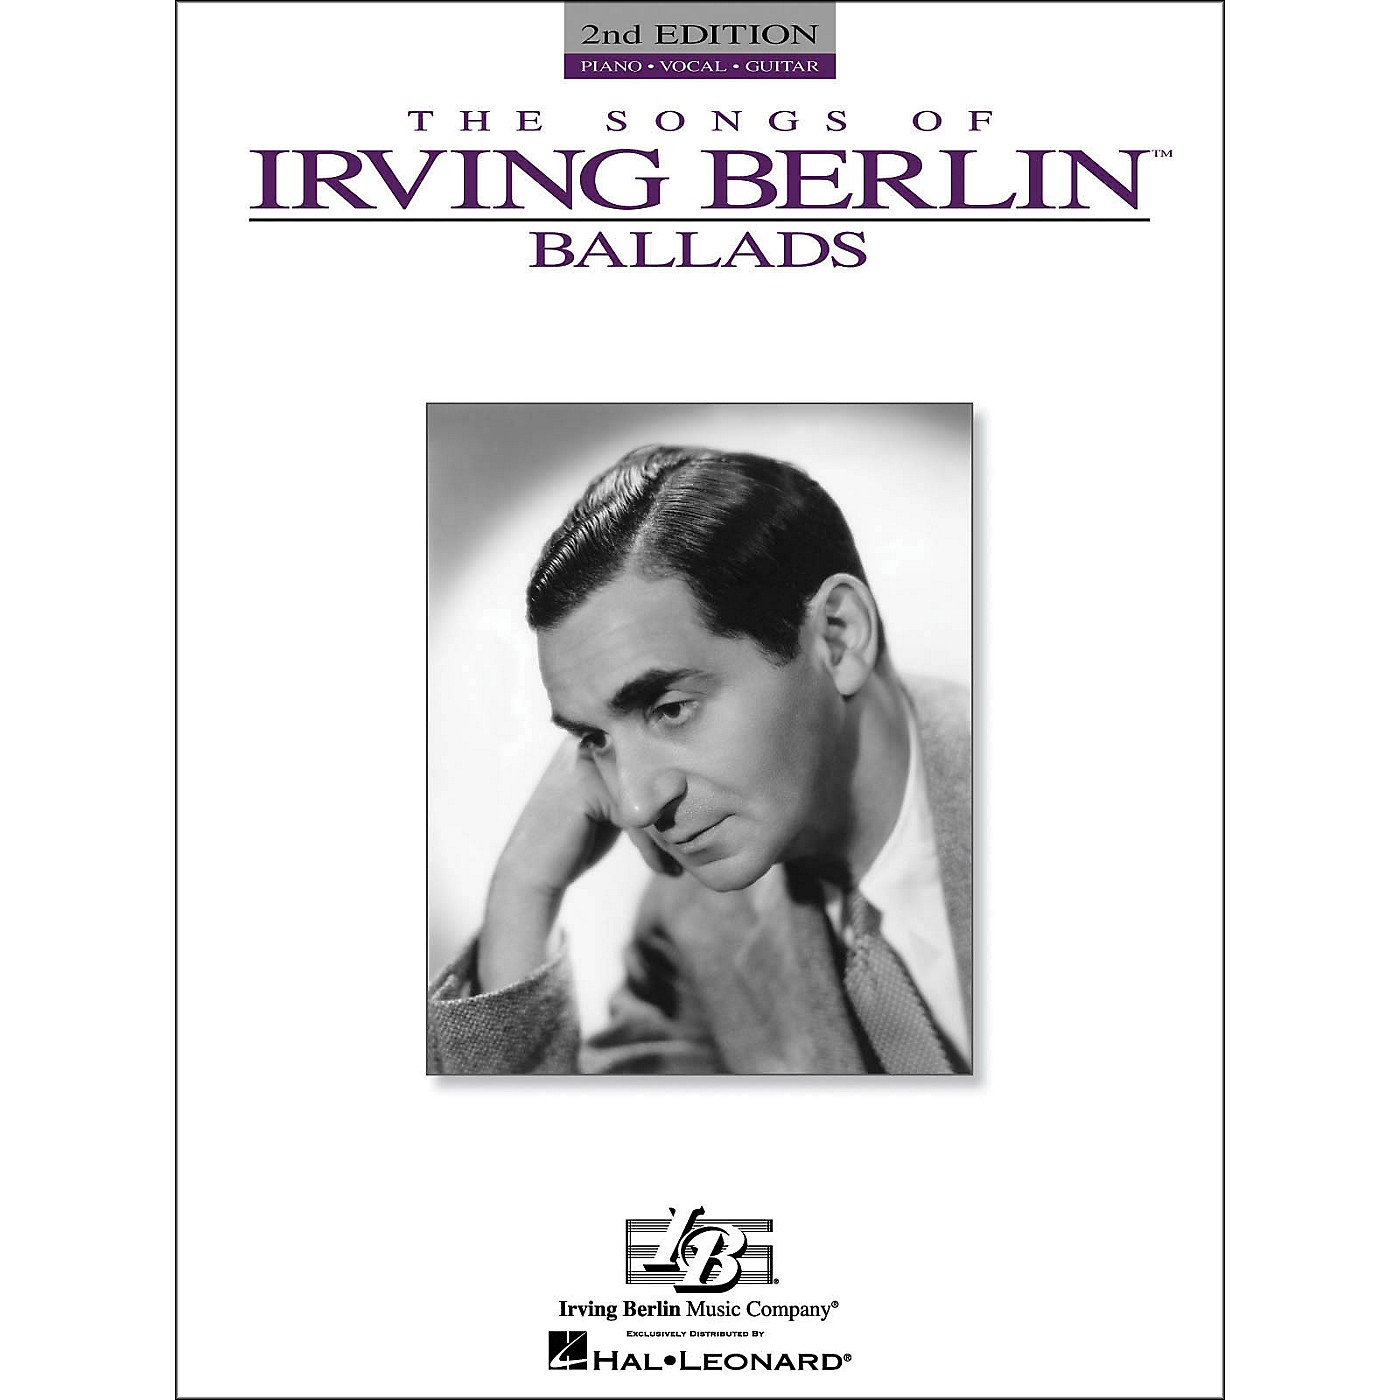 Hal Leonard The Songs Of Irving Berlin Ballads arranged for piano, vocal, and guitar (P/V/G) thumbnail